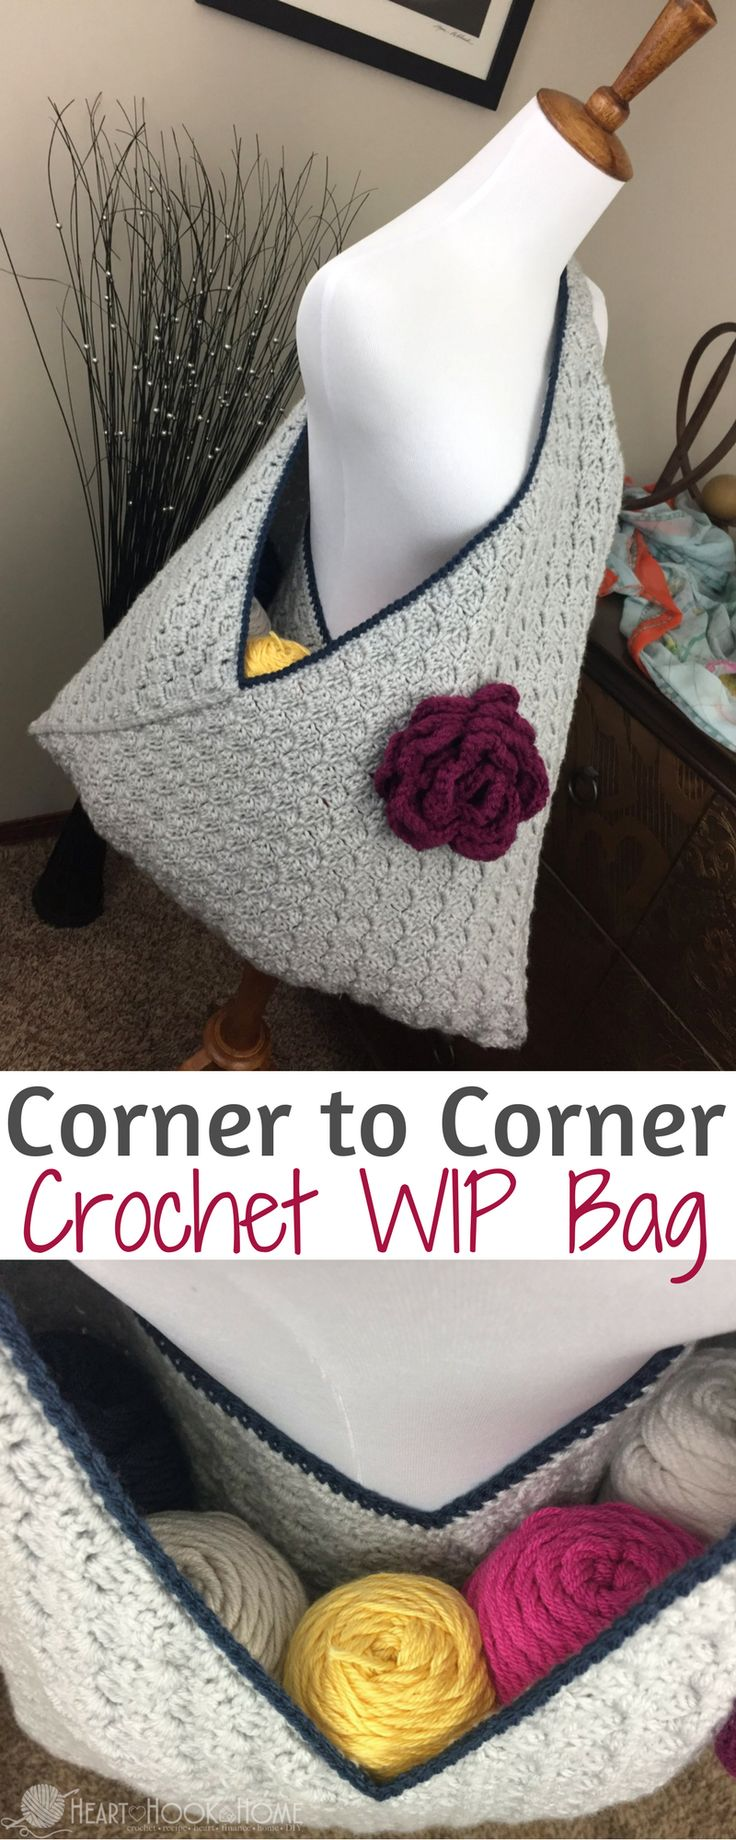 Crochet WIP Bag (Work In Progress) Using Corner to Corner http://hearthookhome.com/crochet-wip-bag-work-in-progress-using-corner-to-corner/?utm_campaign=coschedule&utm_source=pinterest&utm_medium=Ashlea%20K%20-%20Heart%2C%20Hook%2C%20Home&utm_content=Crochet%20WIP%20Bag%20%28Work%20In%20Progress%29%20Using%20Corner%20to%20Corner